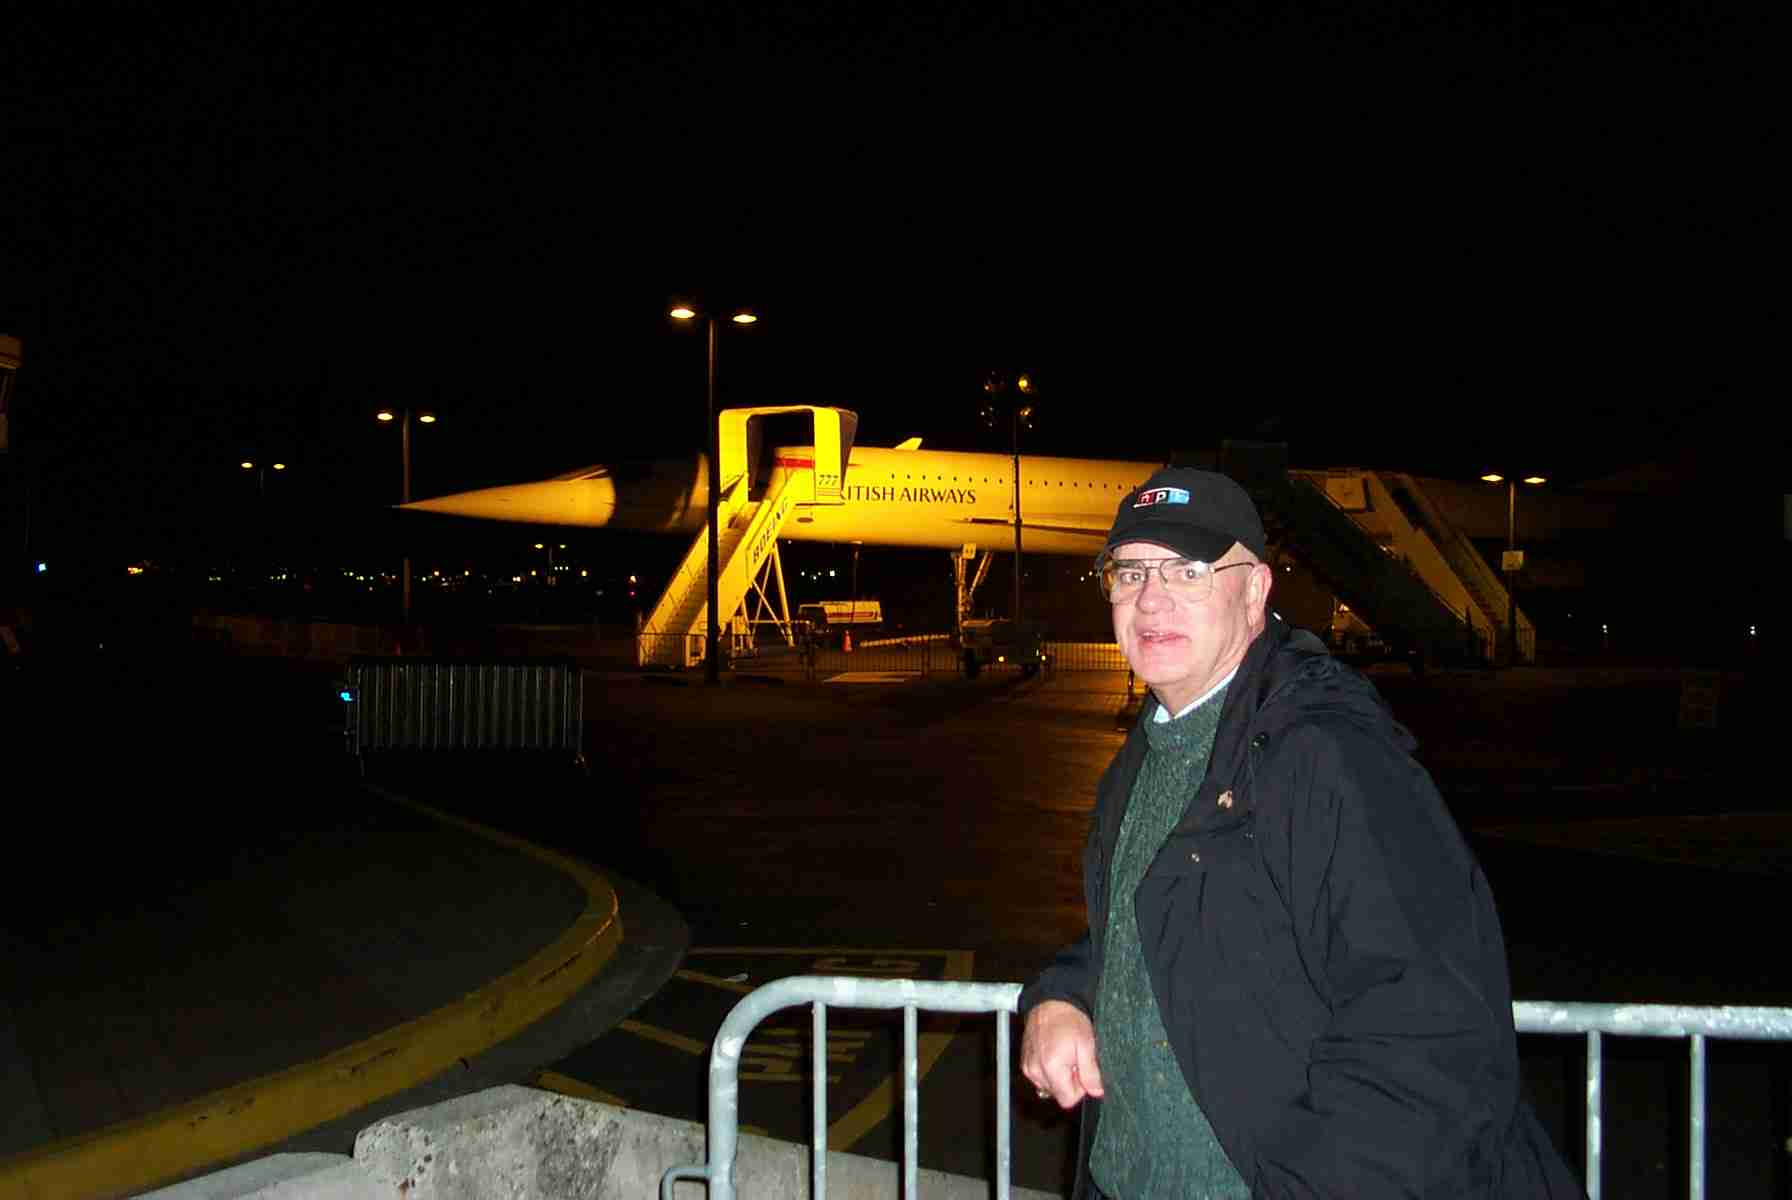 Our Man On Assignment - Mike Lavelle - and Concorde